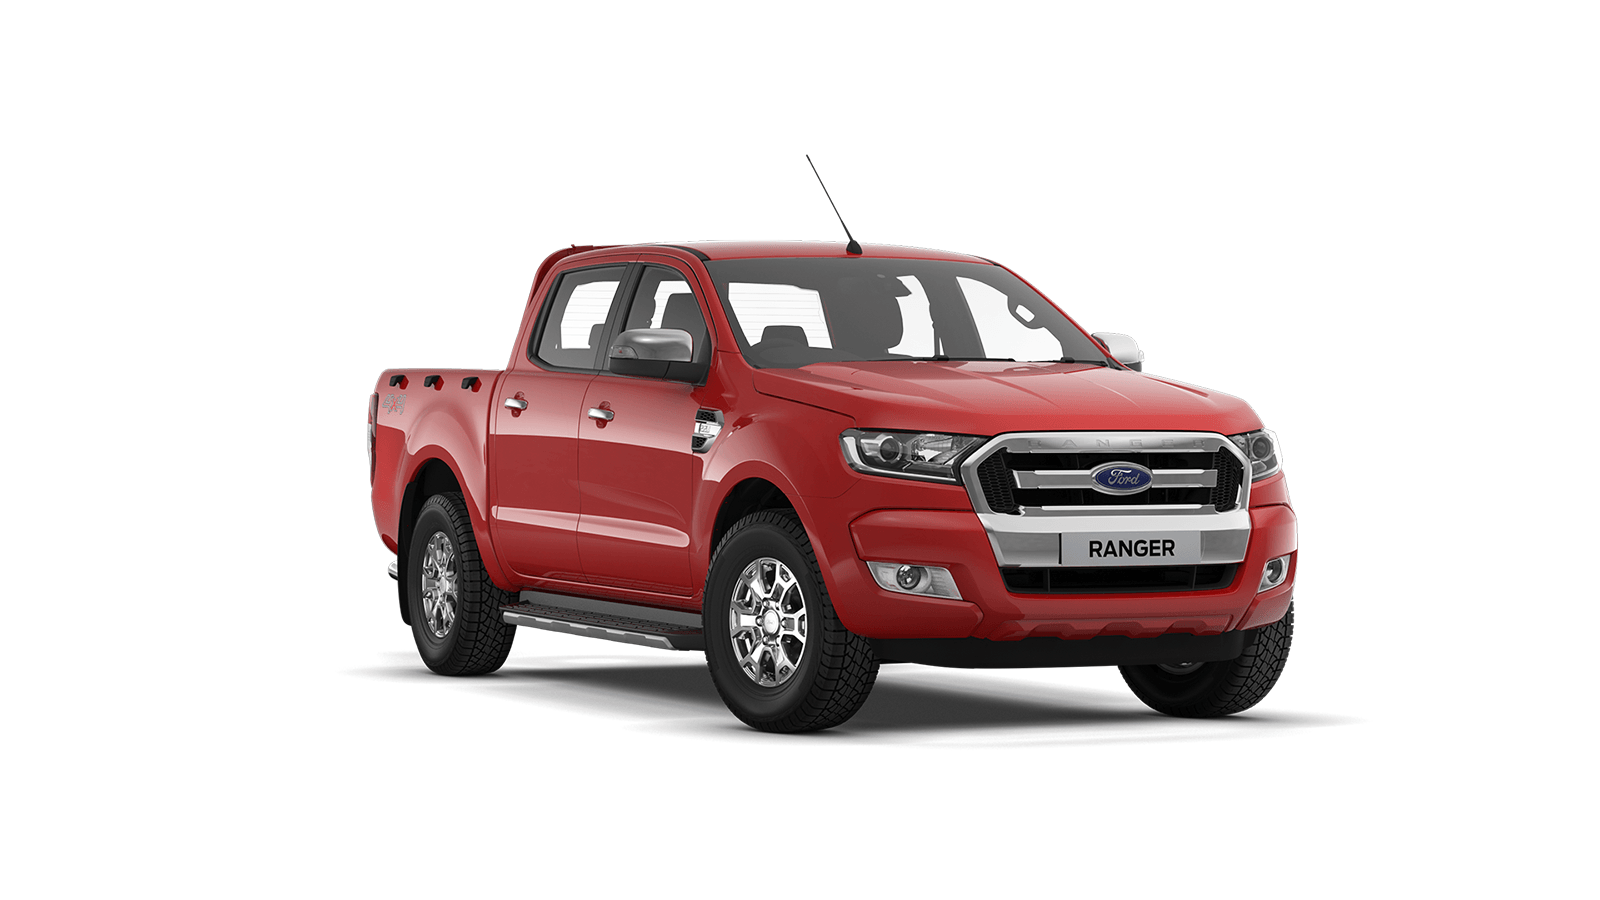 New Ford RANGER at MotorLux